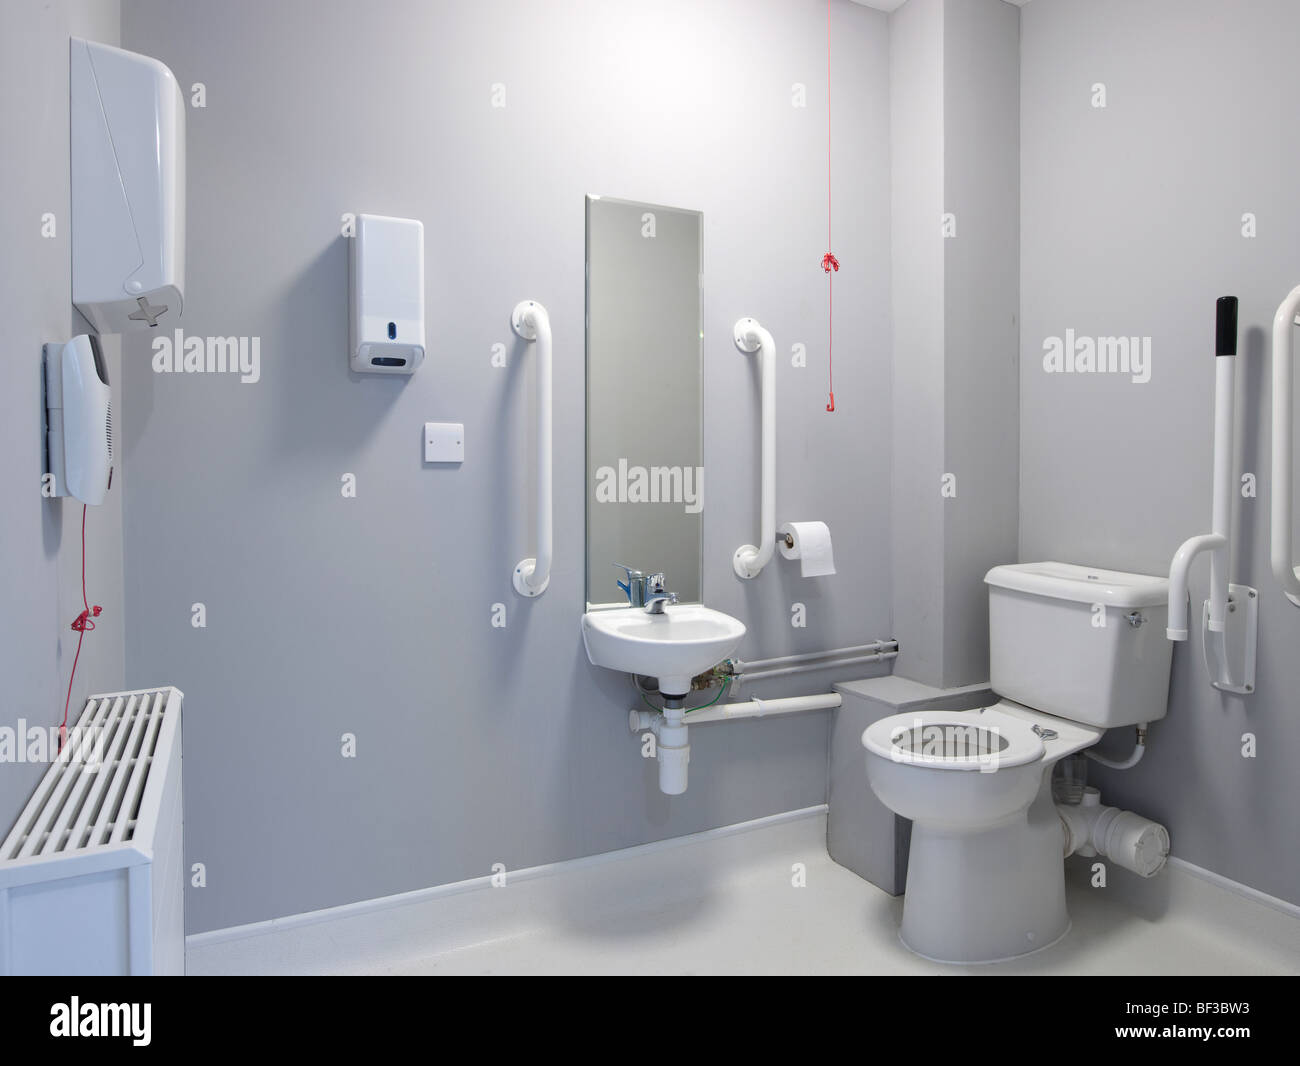 Bathroom facilities